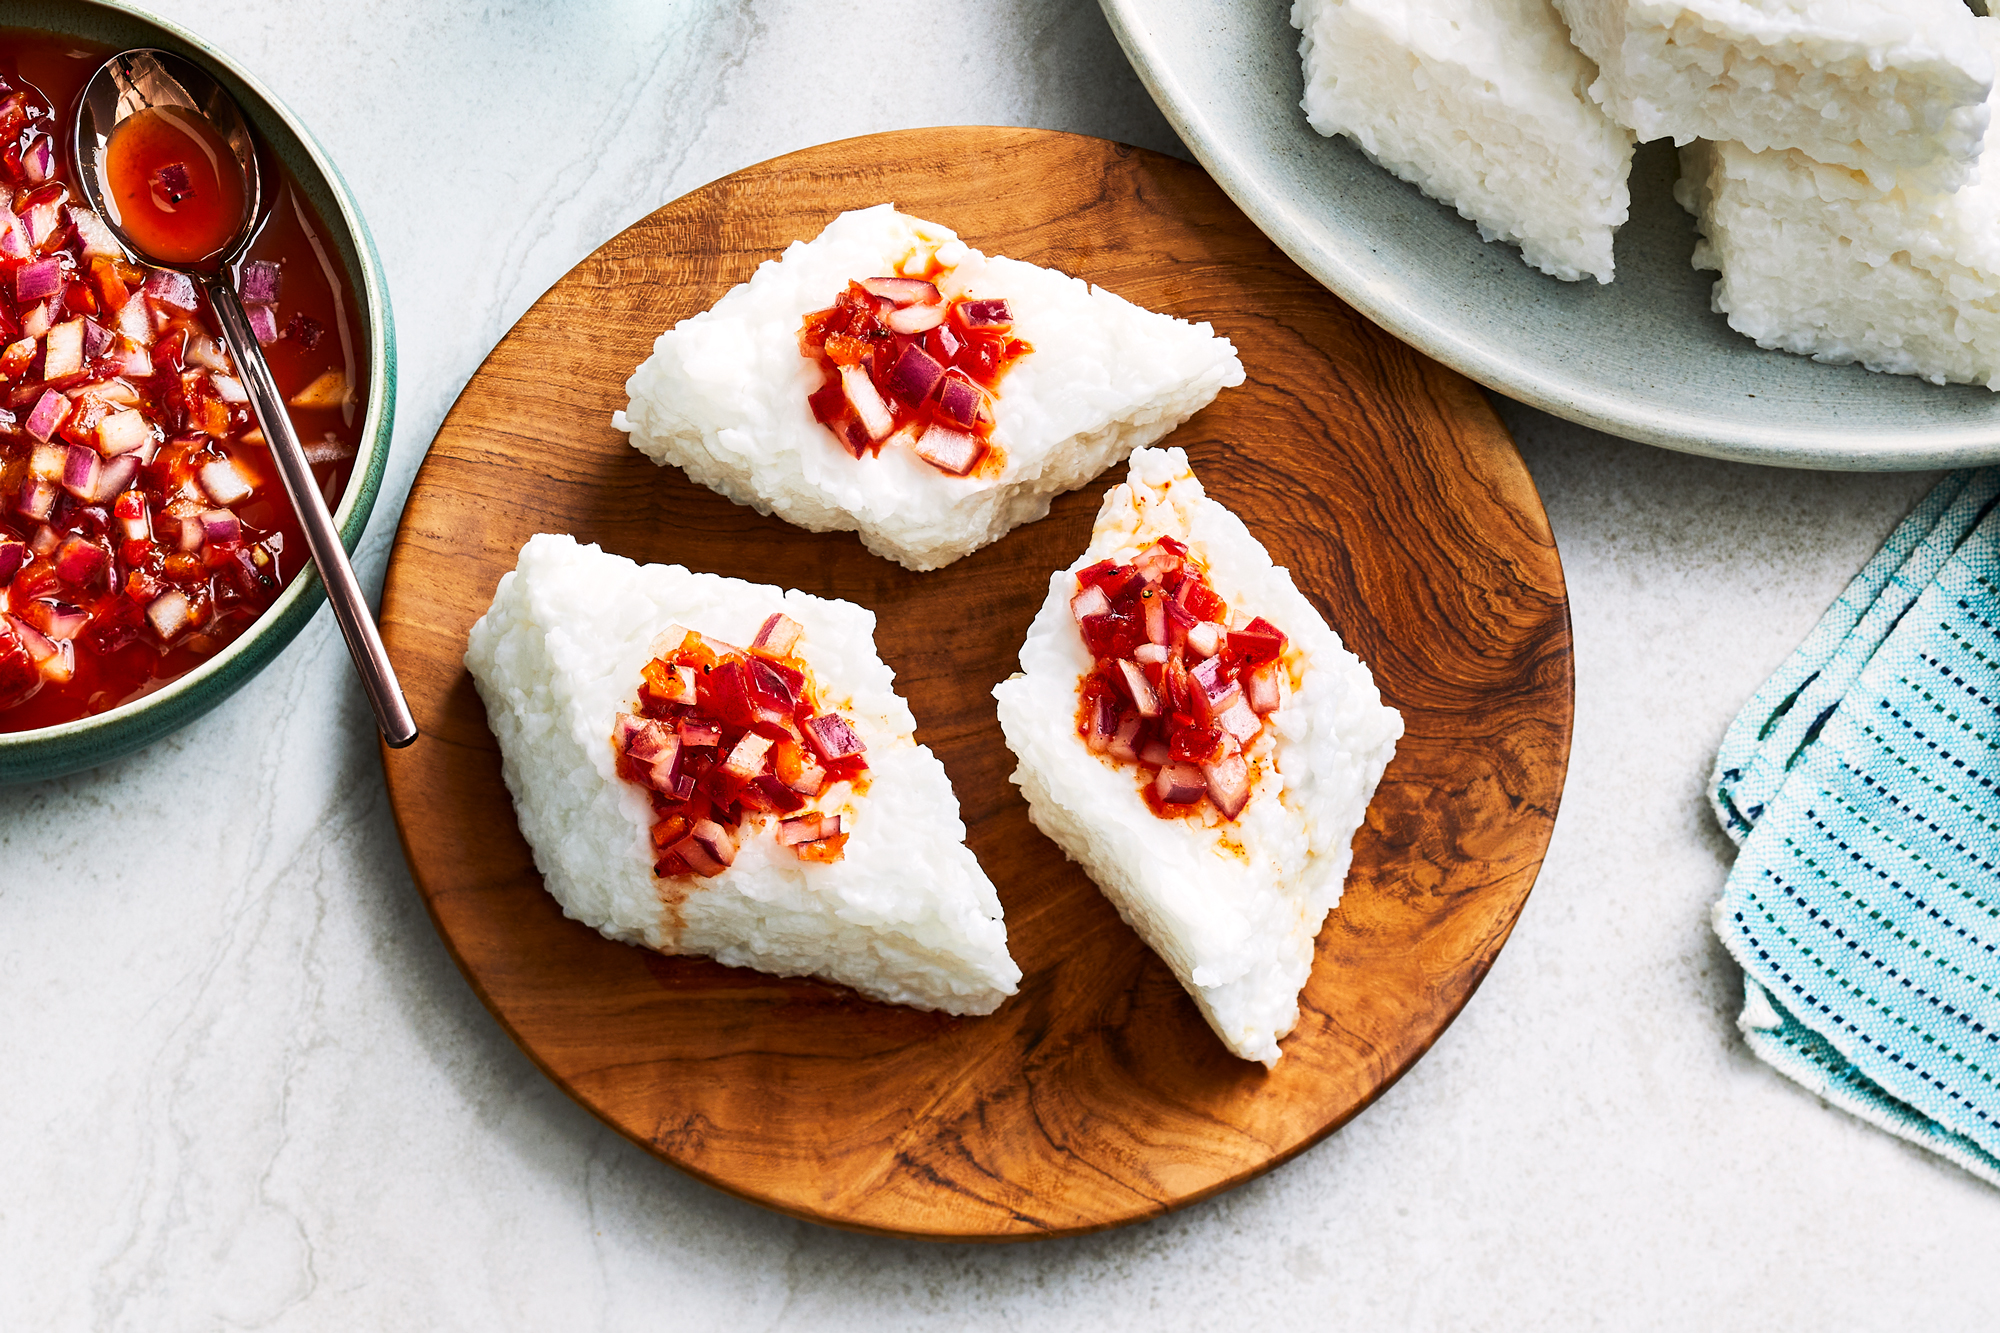 Kiribath with Lunu Miris (Coconut Rice with Sambal)